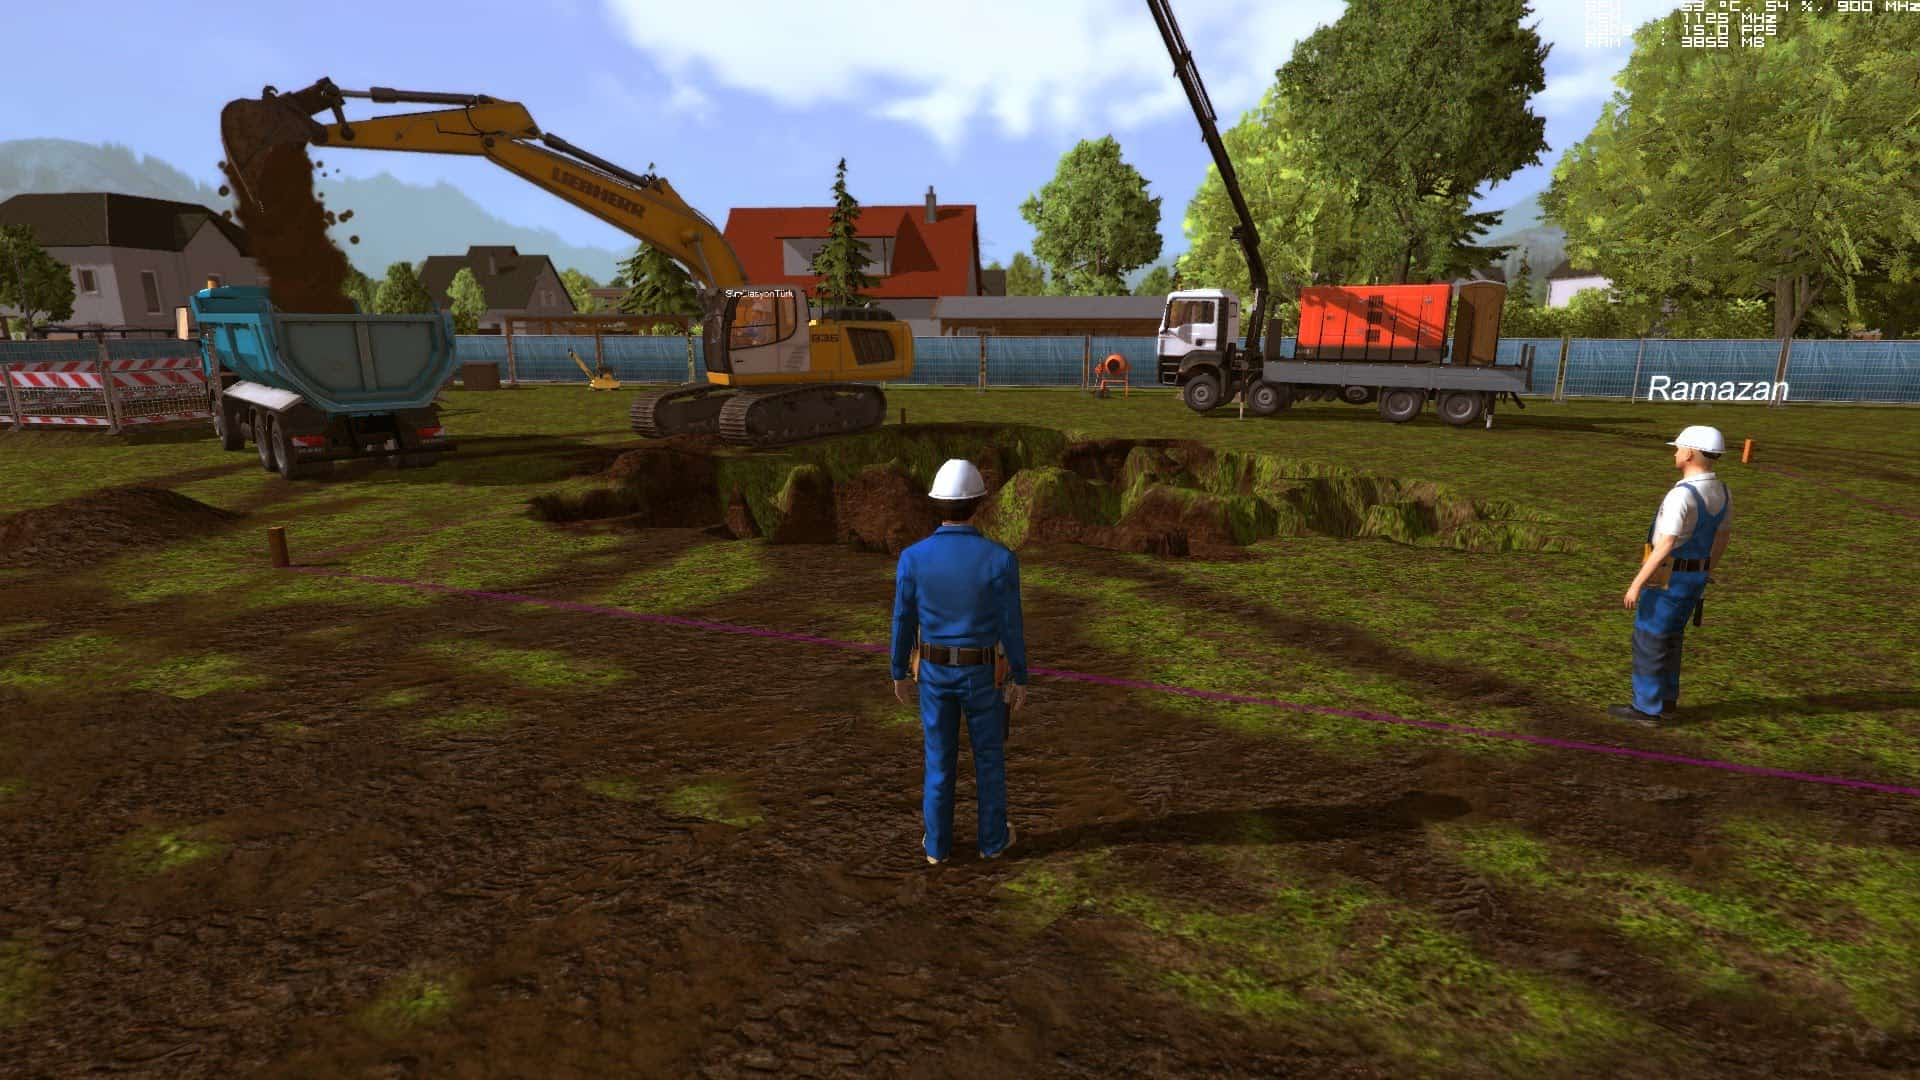 Construction simulator 2015 complet de jeu pc gratuit - Jeu de construction de maison virtuel ...